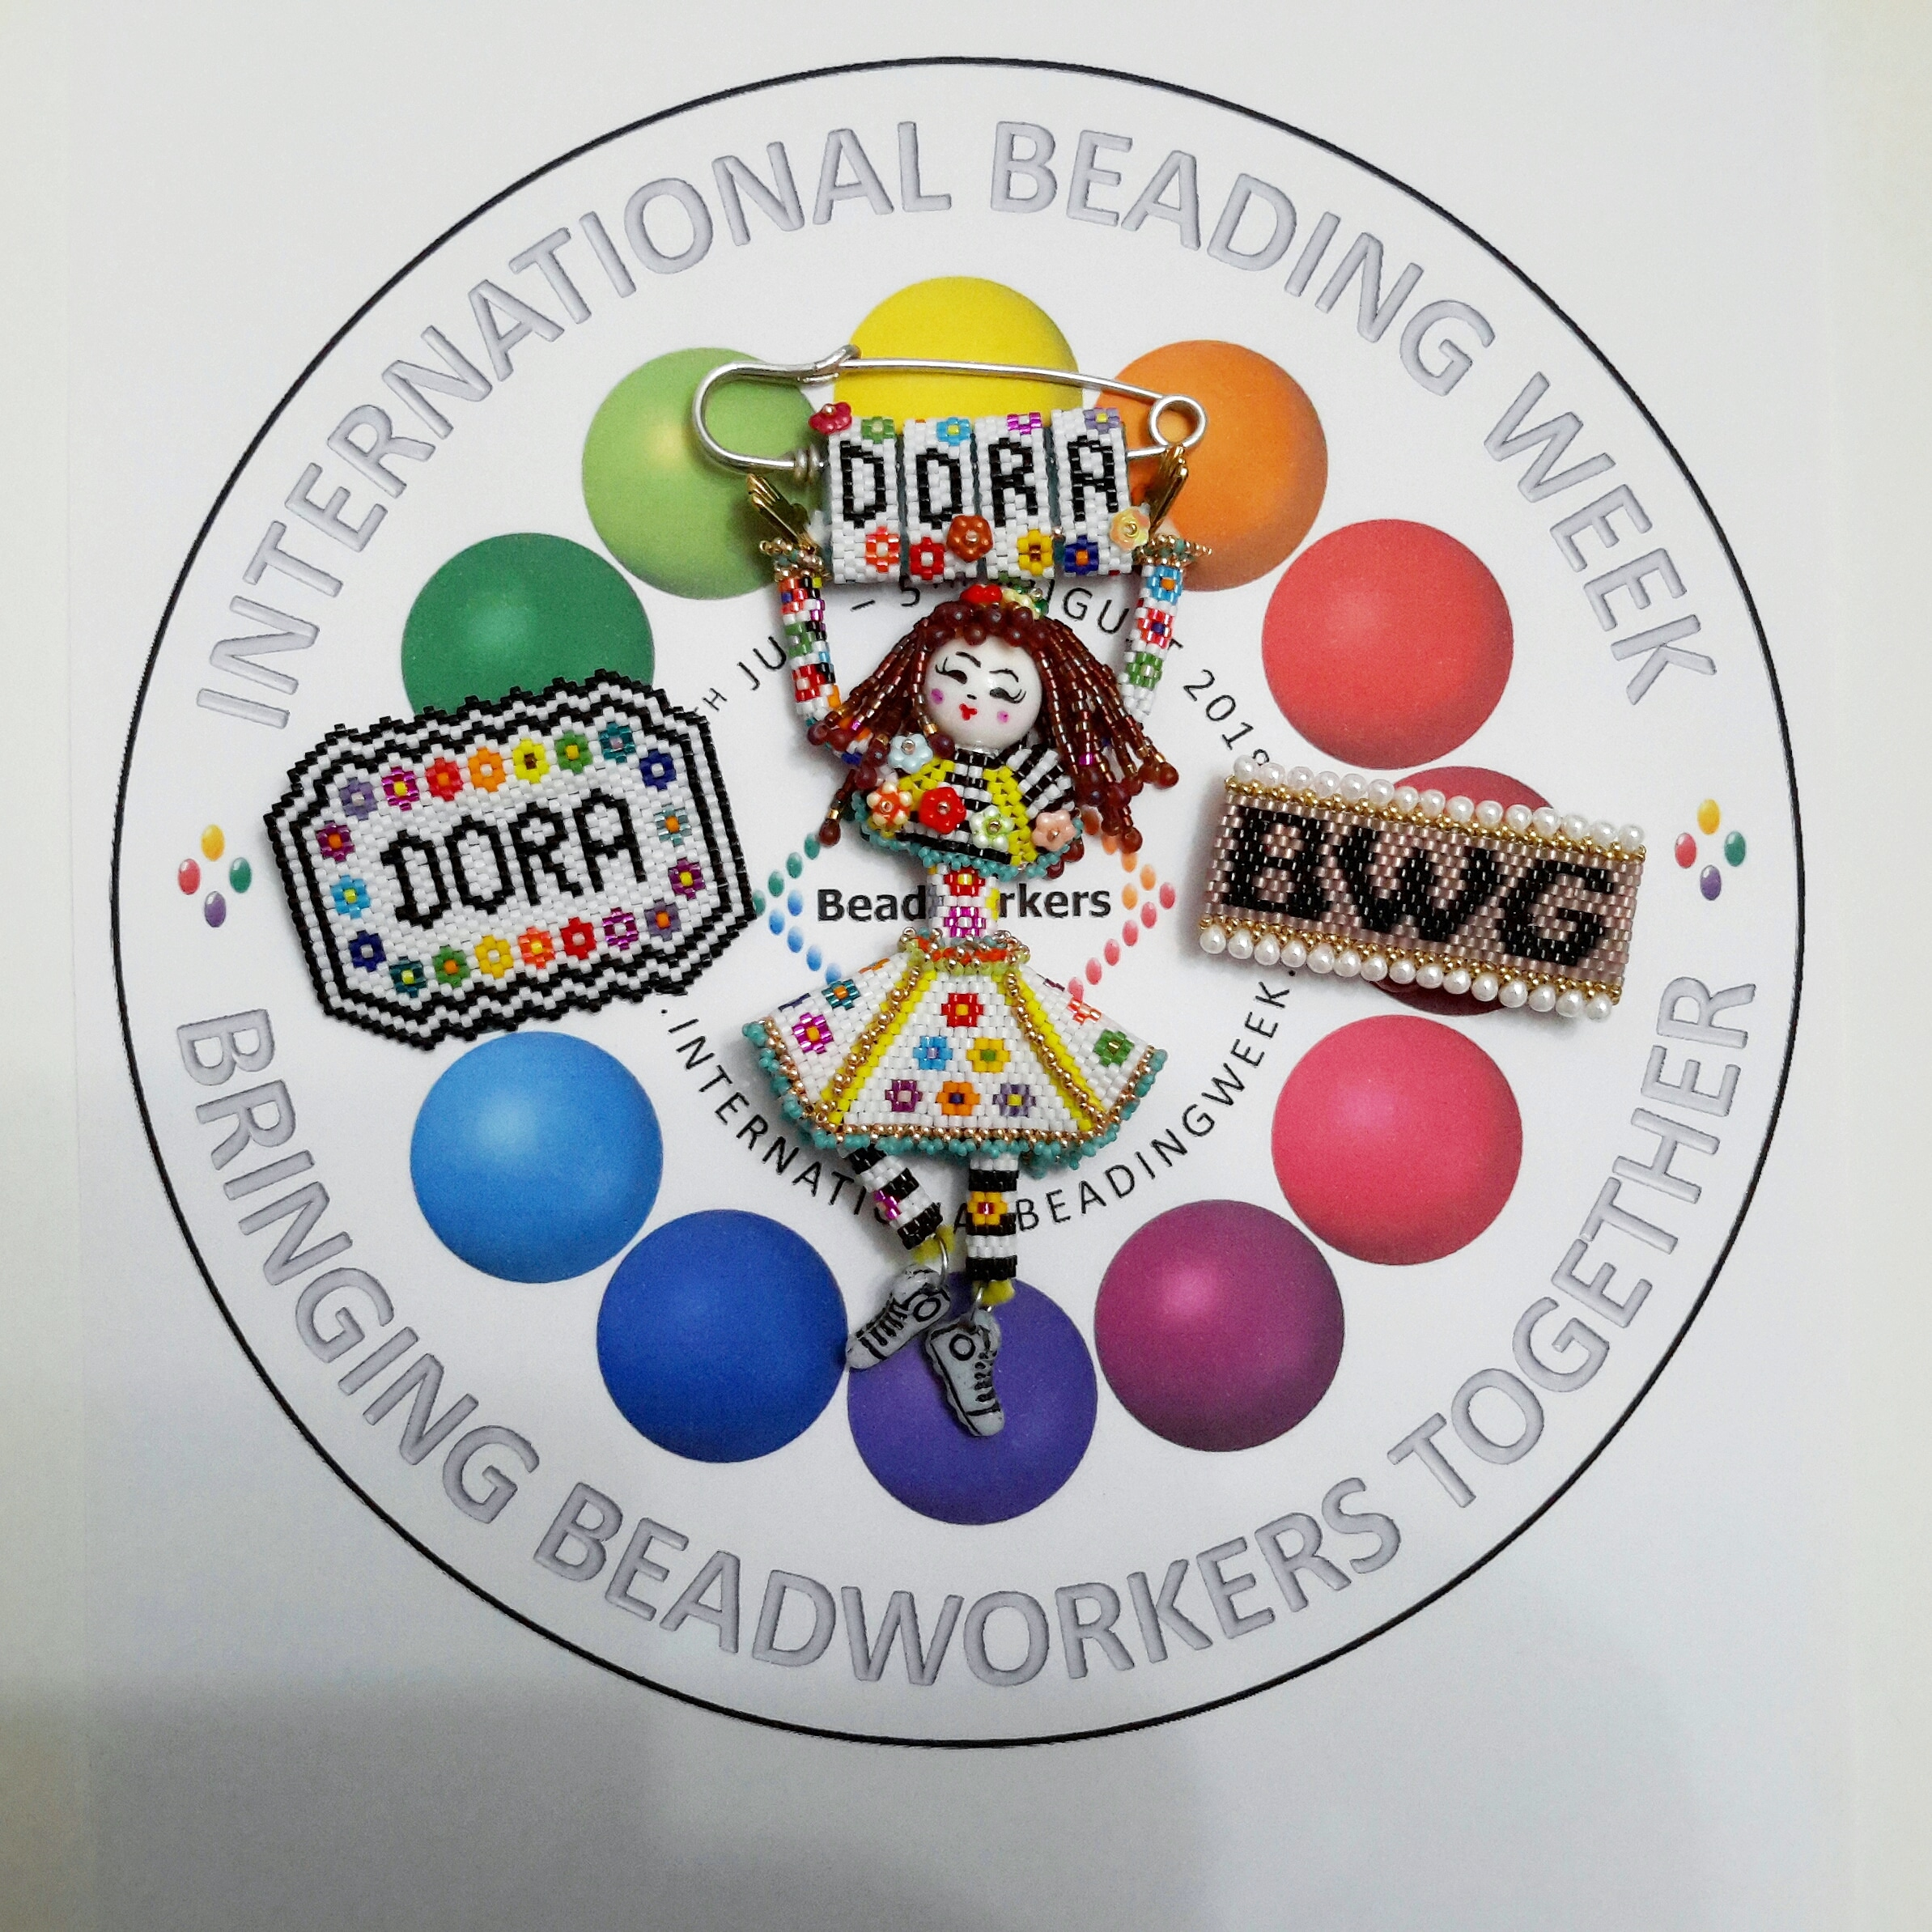 IBW 2019 Bead Inspirations contest entry by Dora, Beadflowers, beadwork by Katie Dean